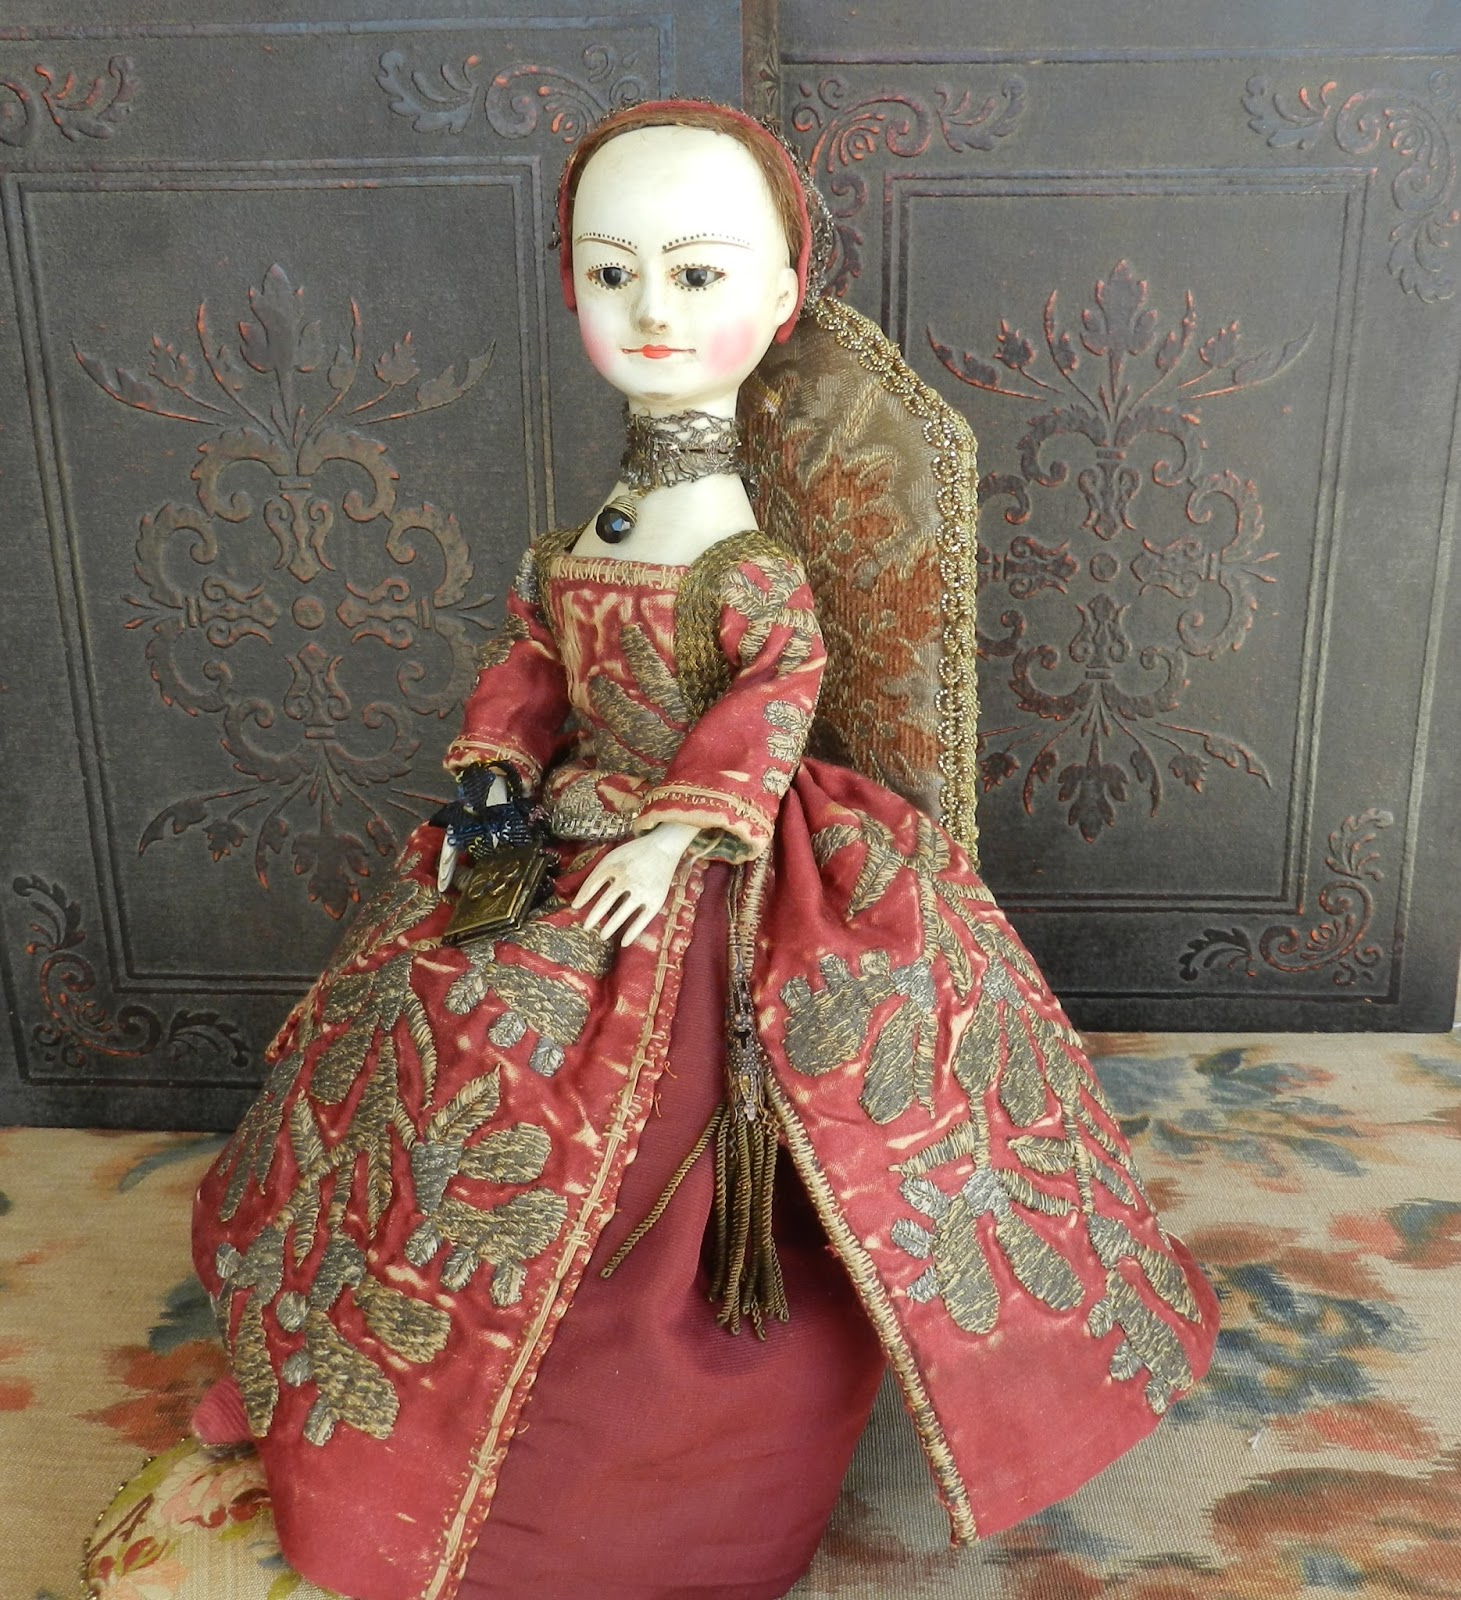 The Old Wooden Sisters Queen Anne Doll Available For Sale